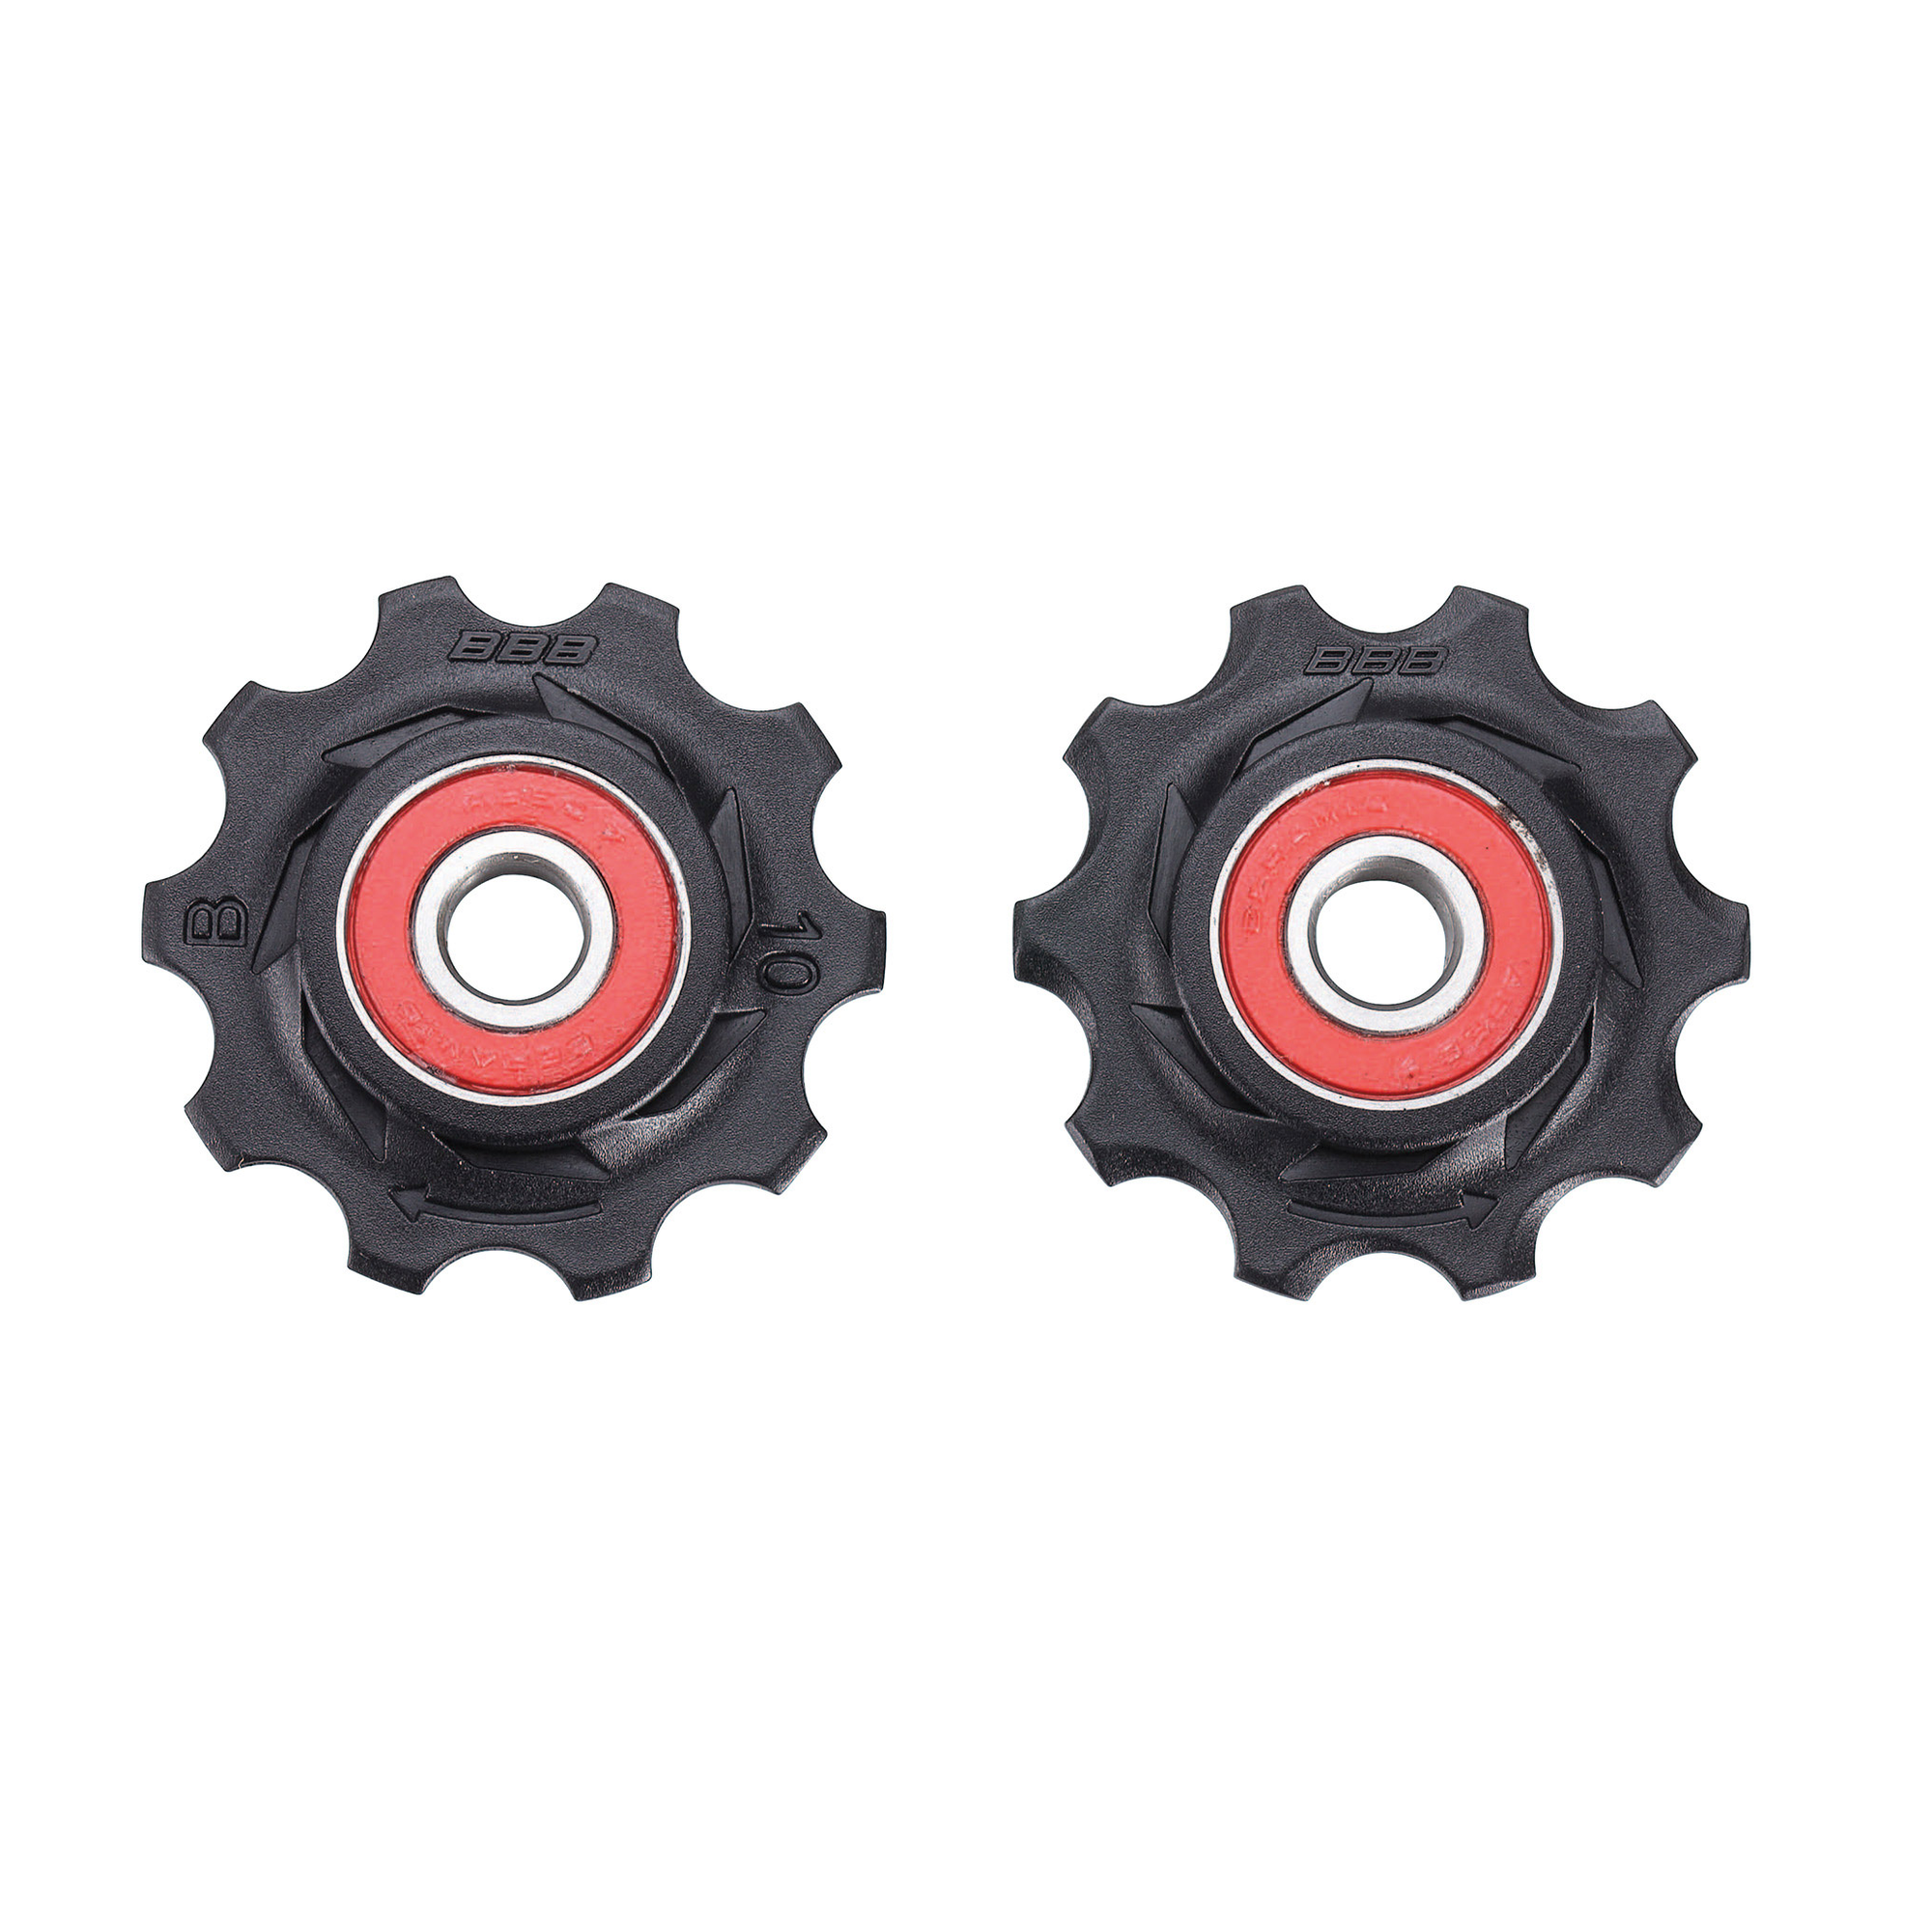 BBB Components > Gears BBB ROLLERBOYS CERAMIC JOCKEY WHEELS 10T BLACK BDP-11